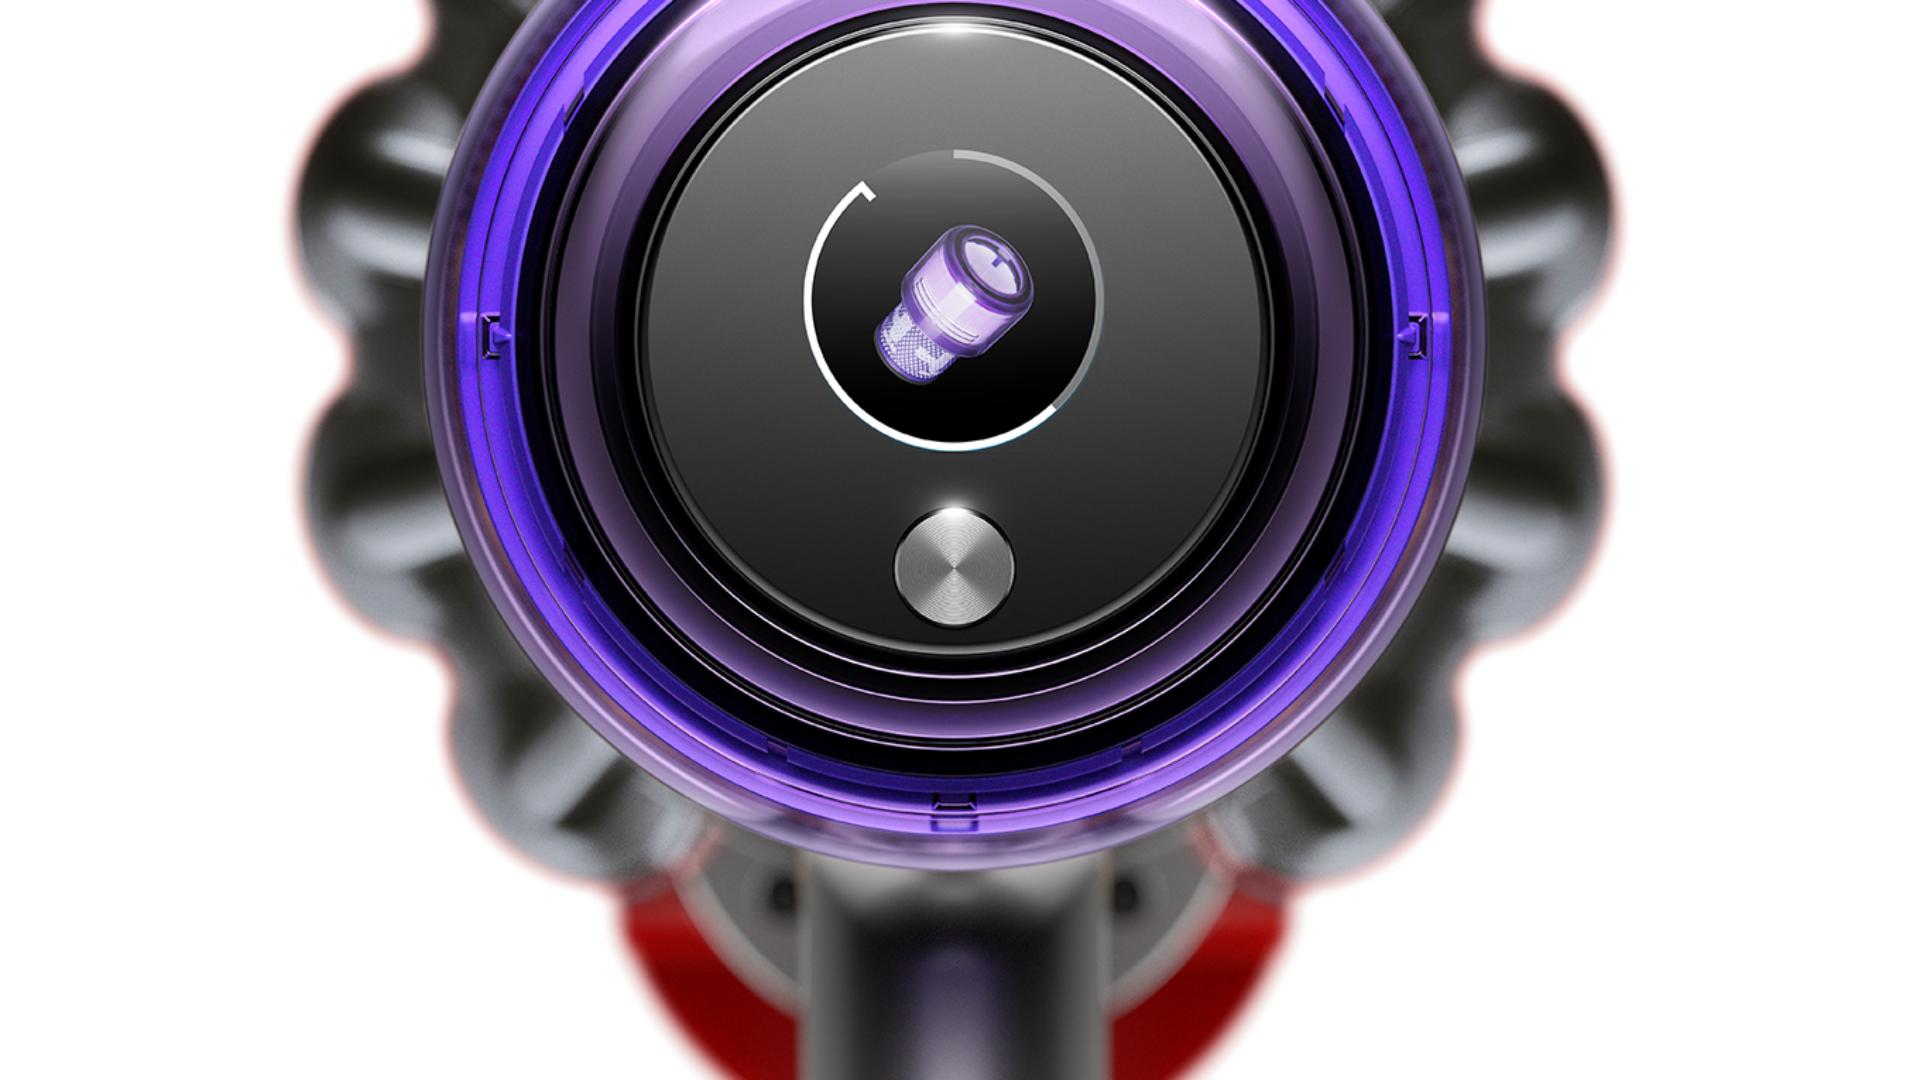 Dyson V11™ vacuum screen showing maintenance alerts